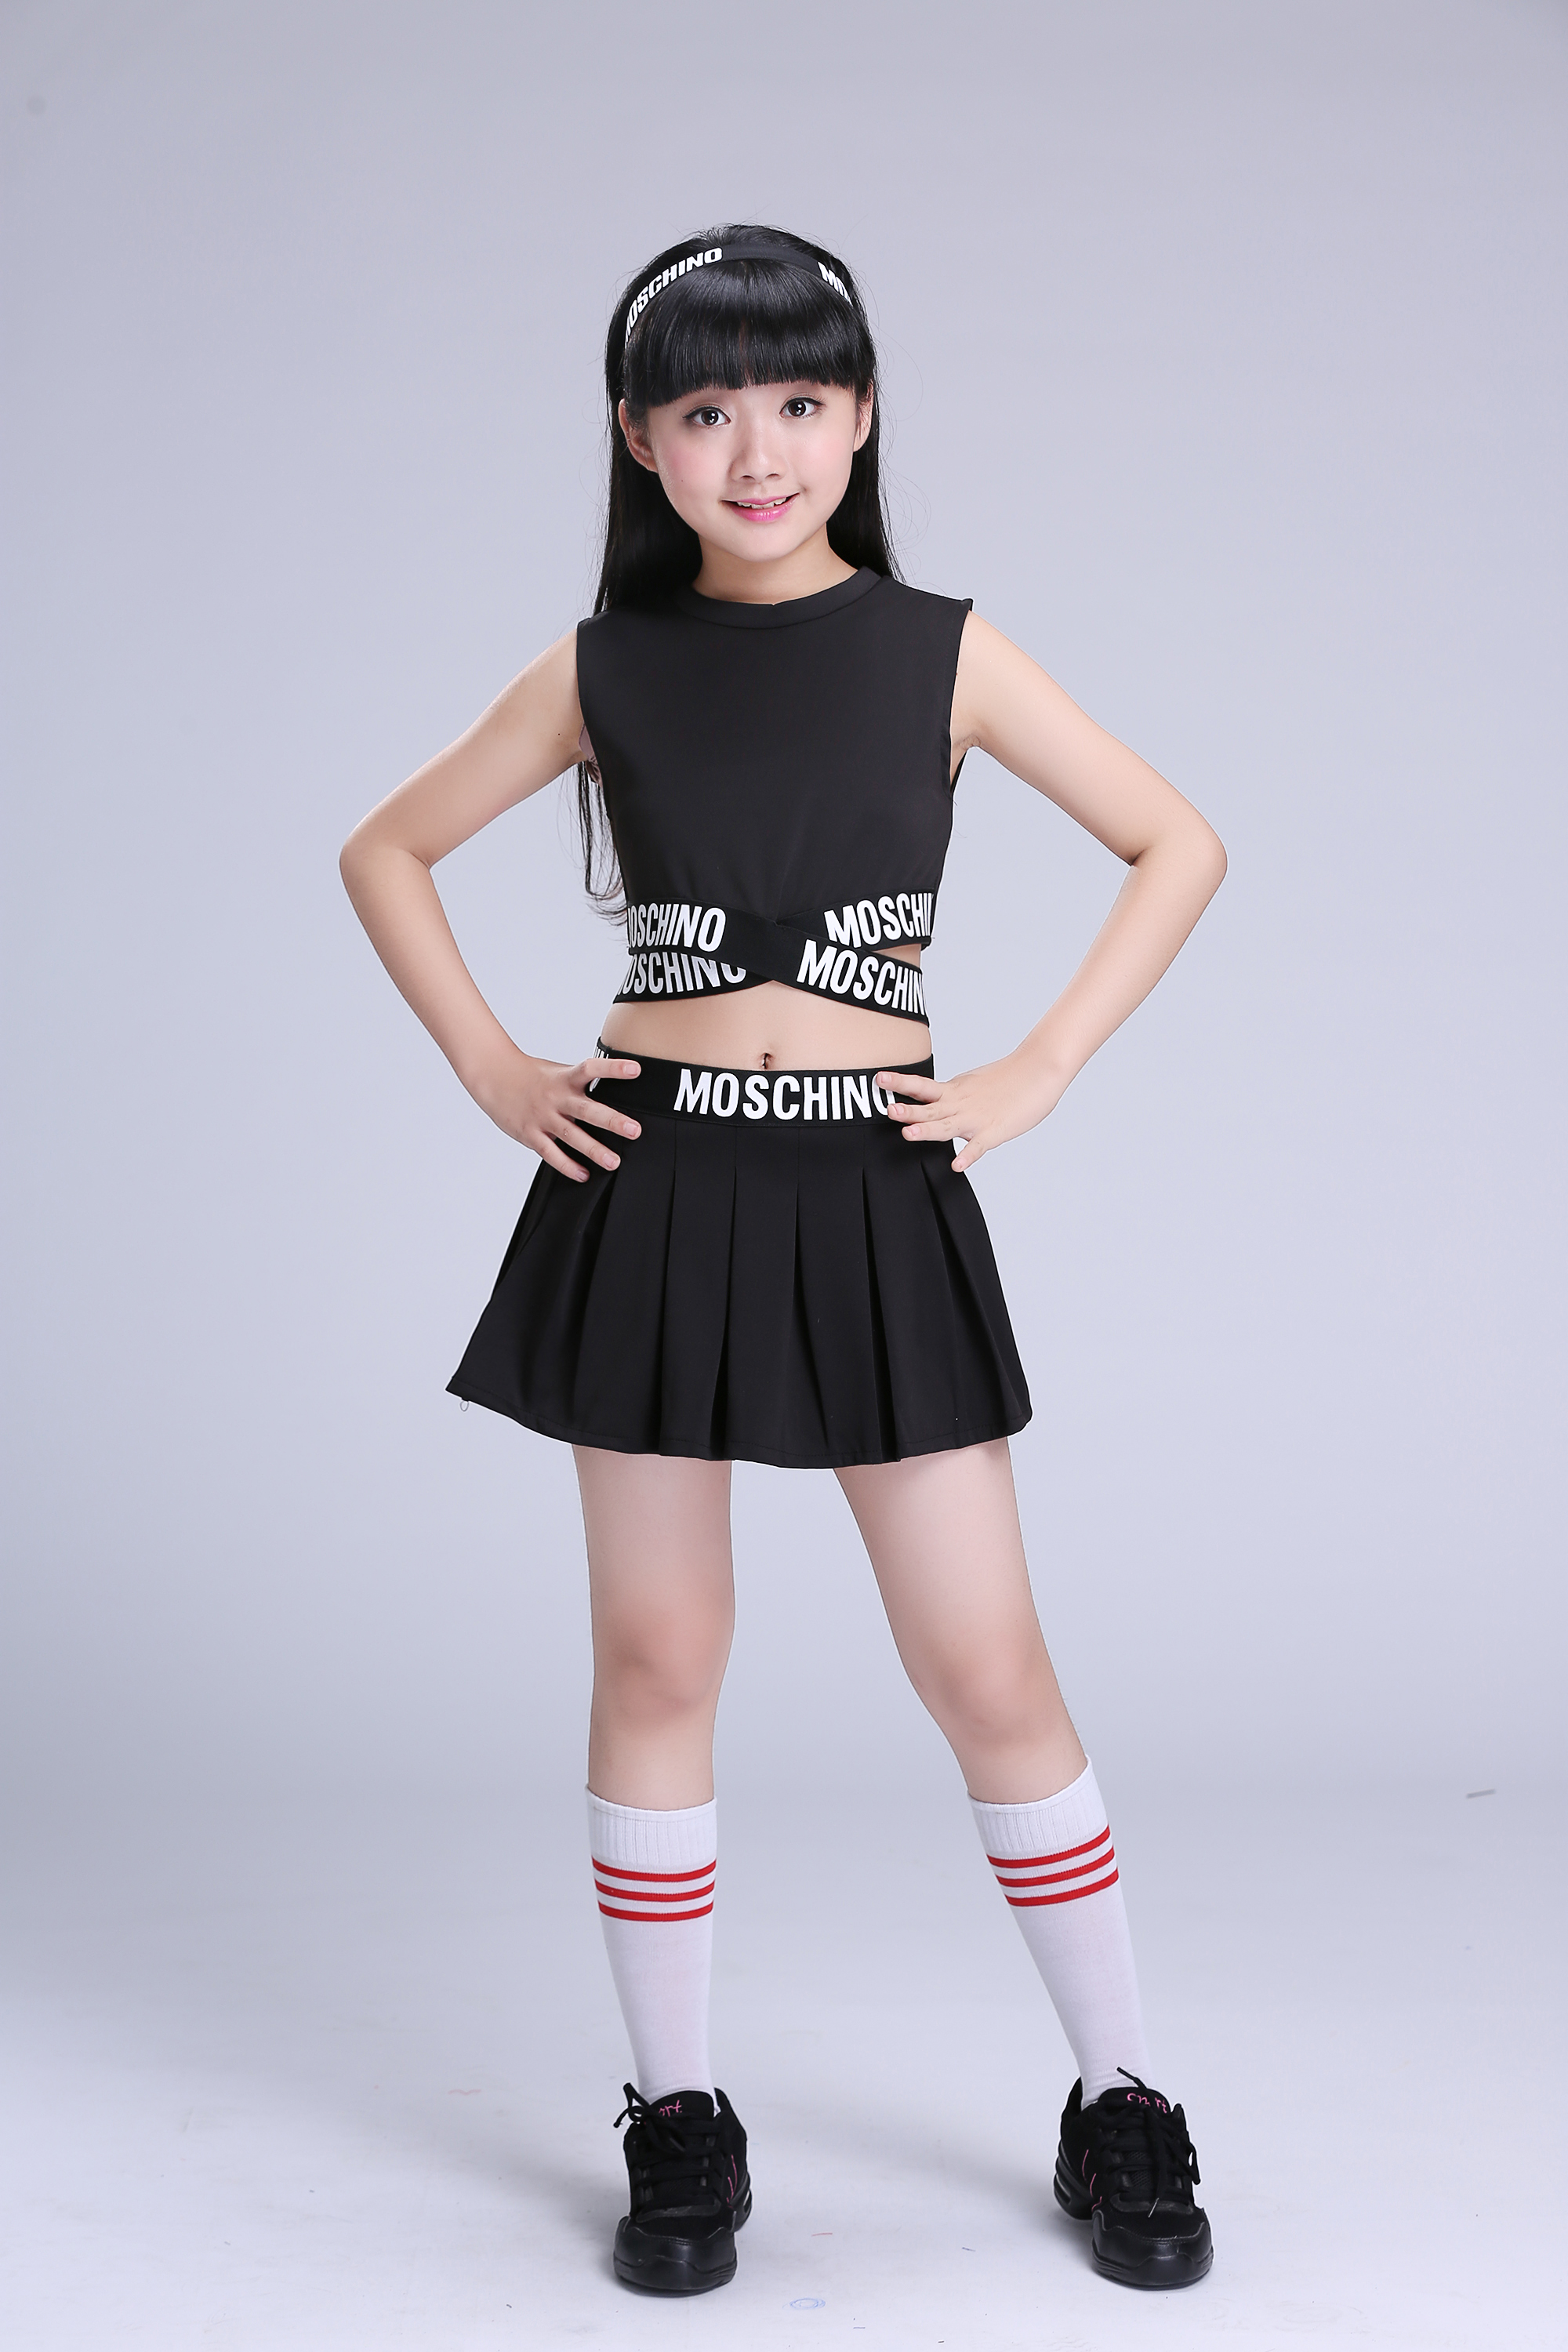 Girls Black Jazz Dance Performance Hip Hop Clothing Childrens Cheerleading -3101